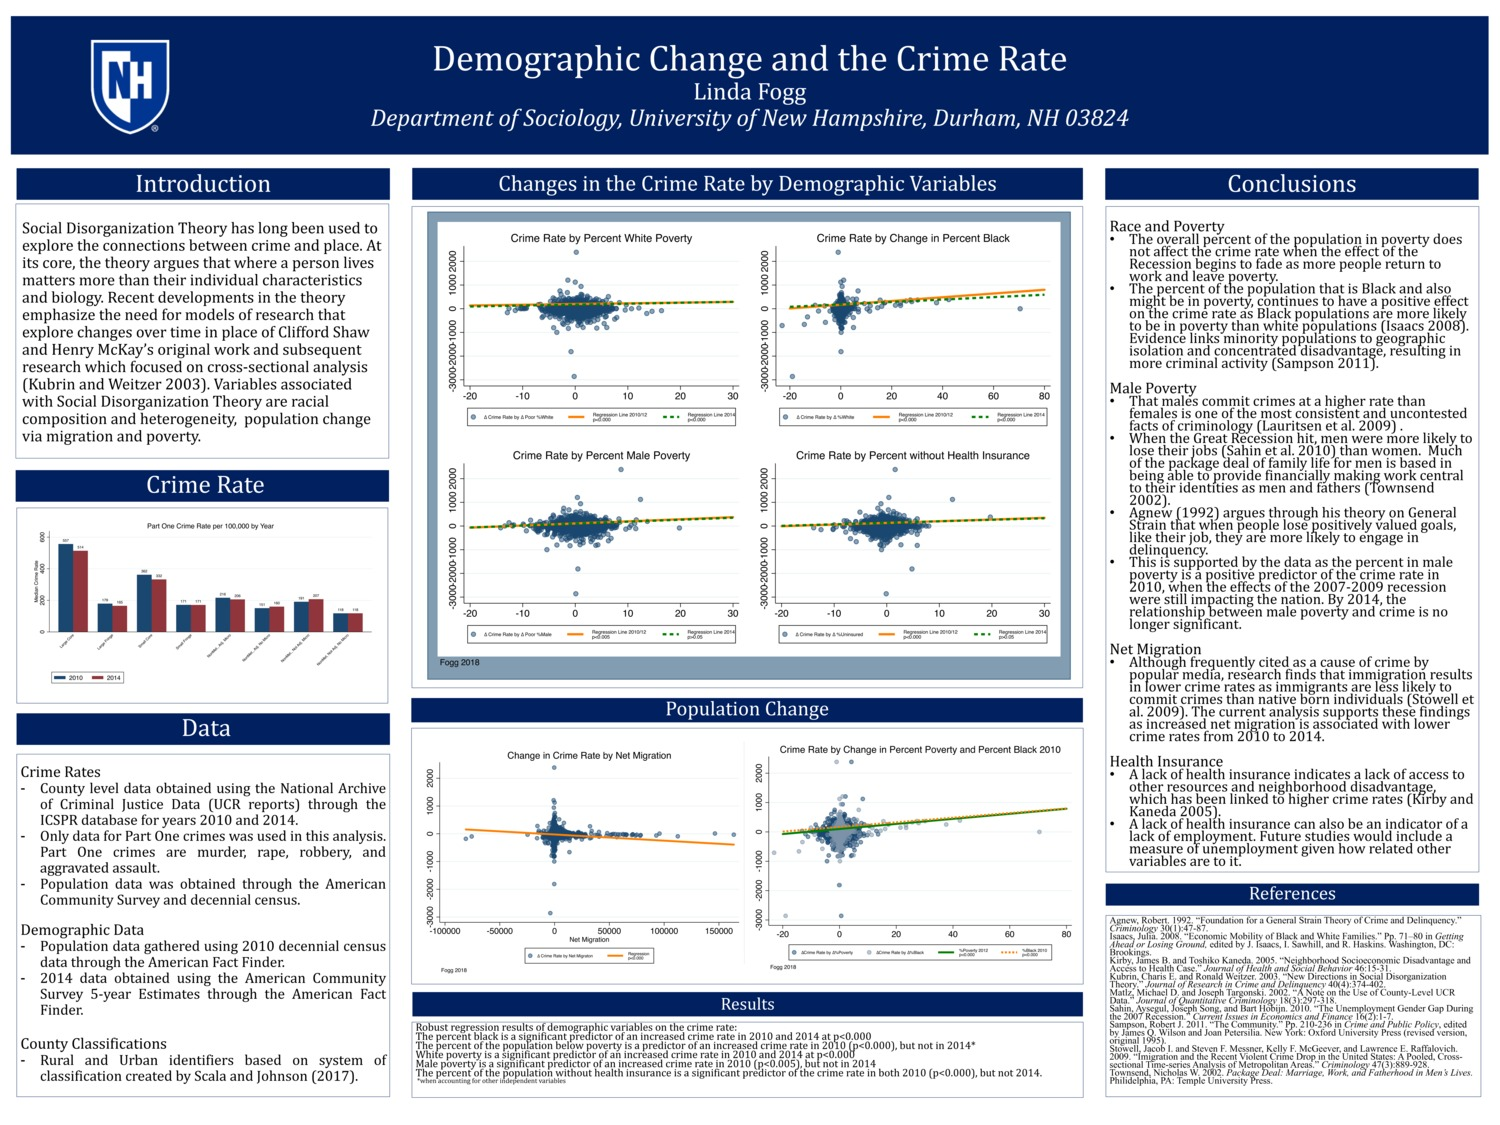 Demographic Change And The Crime Rate by lmf1023